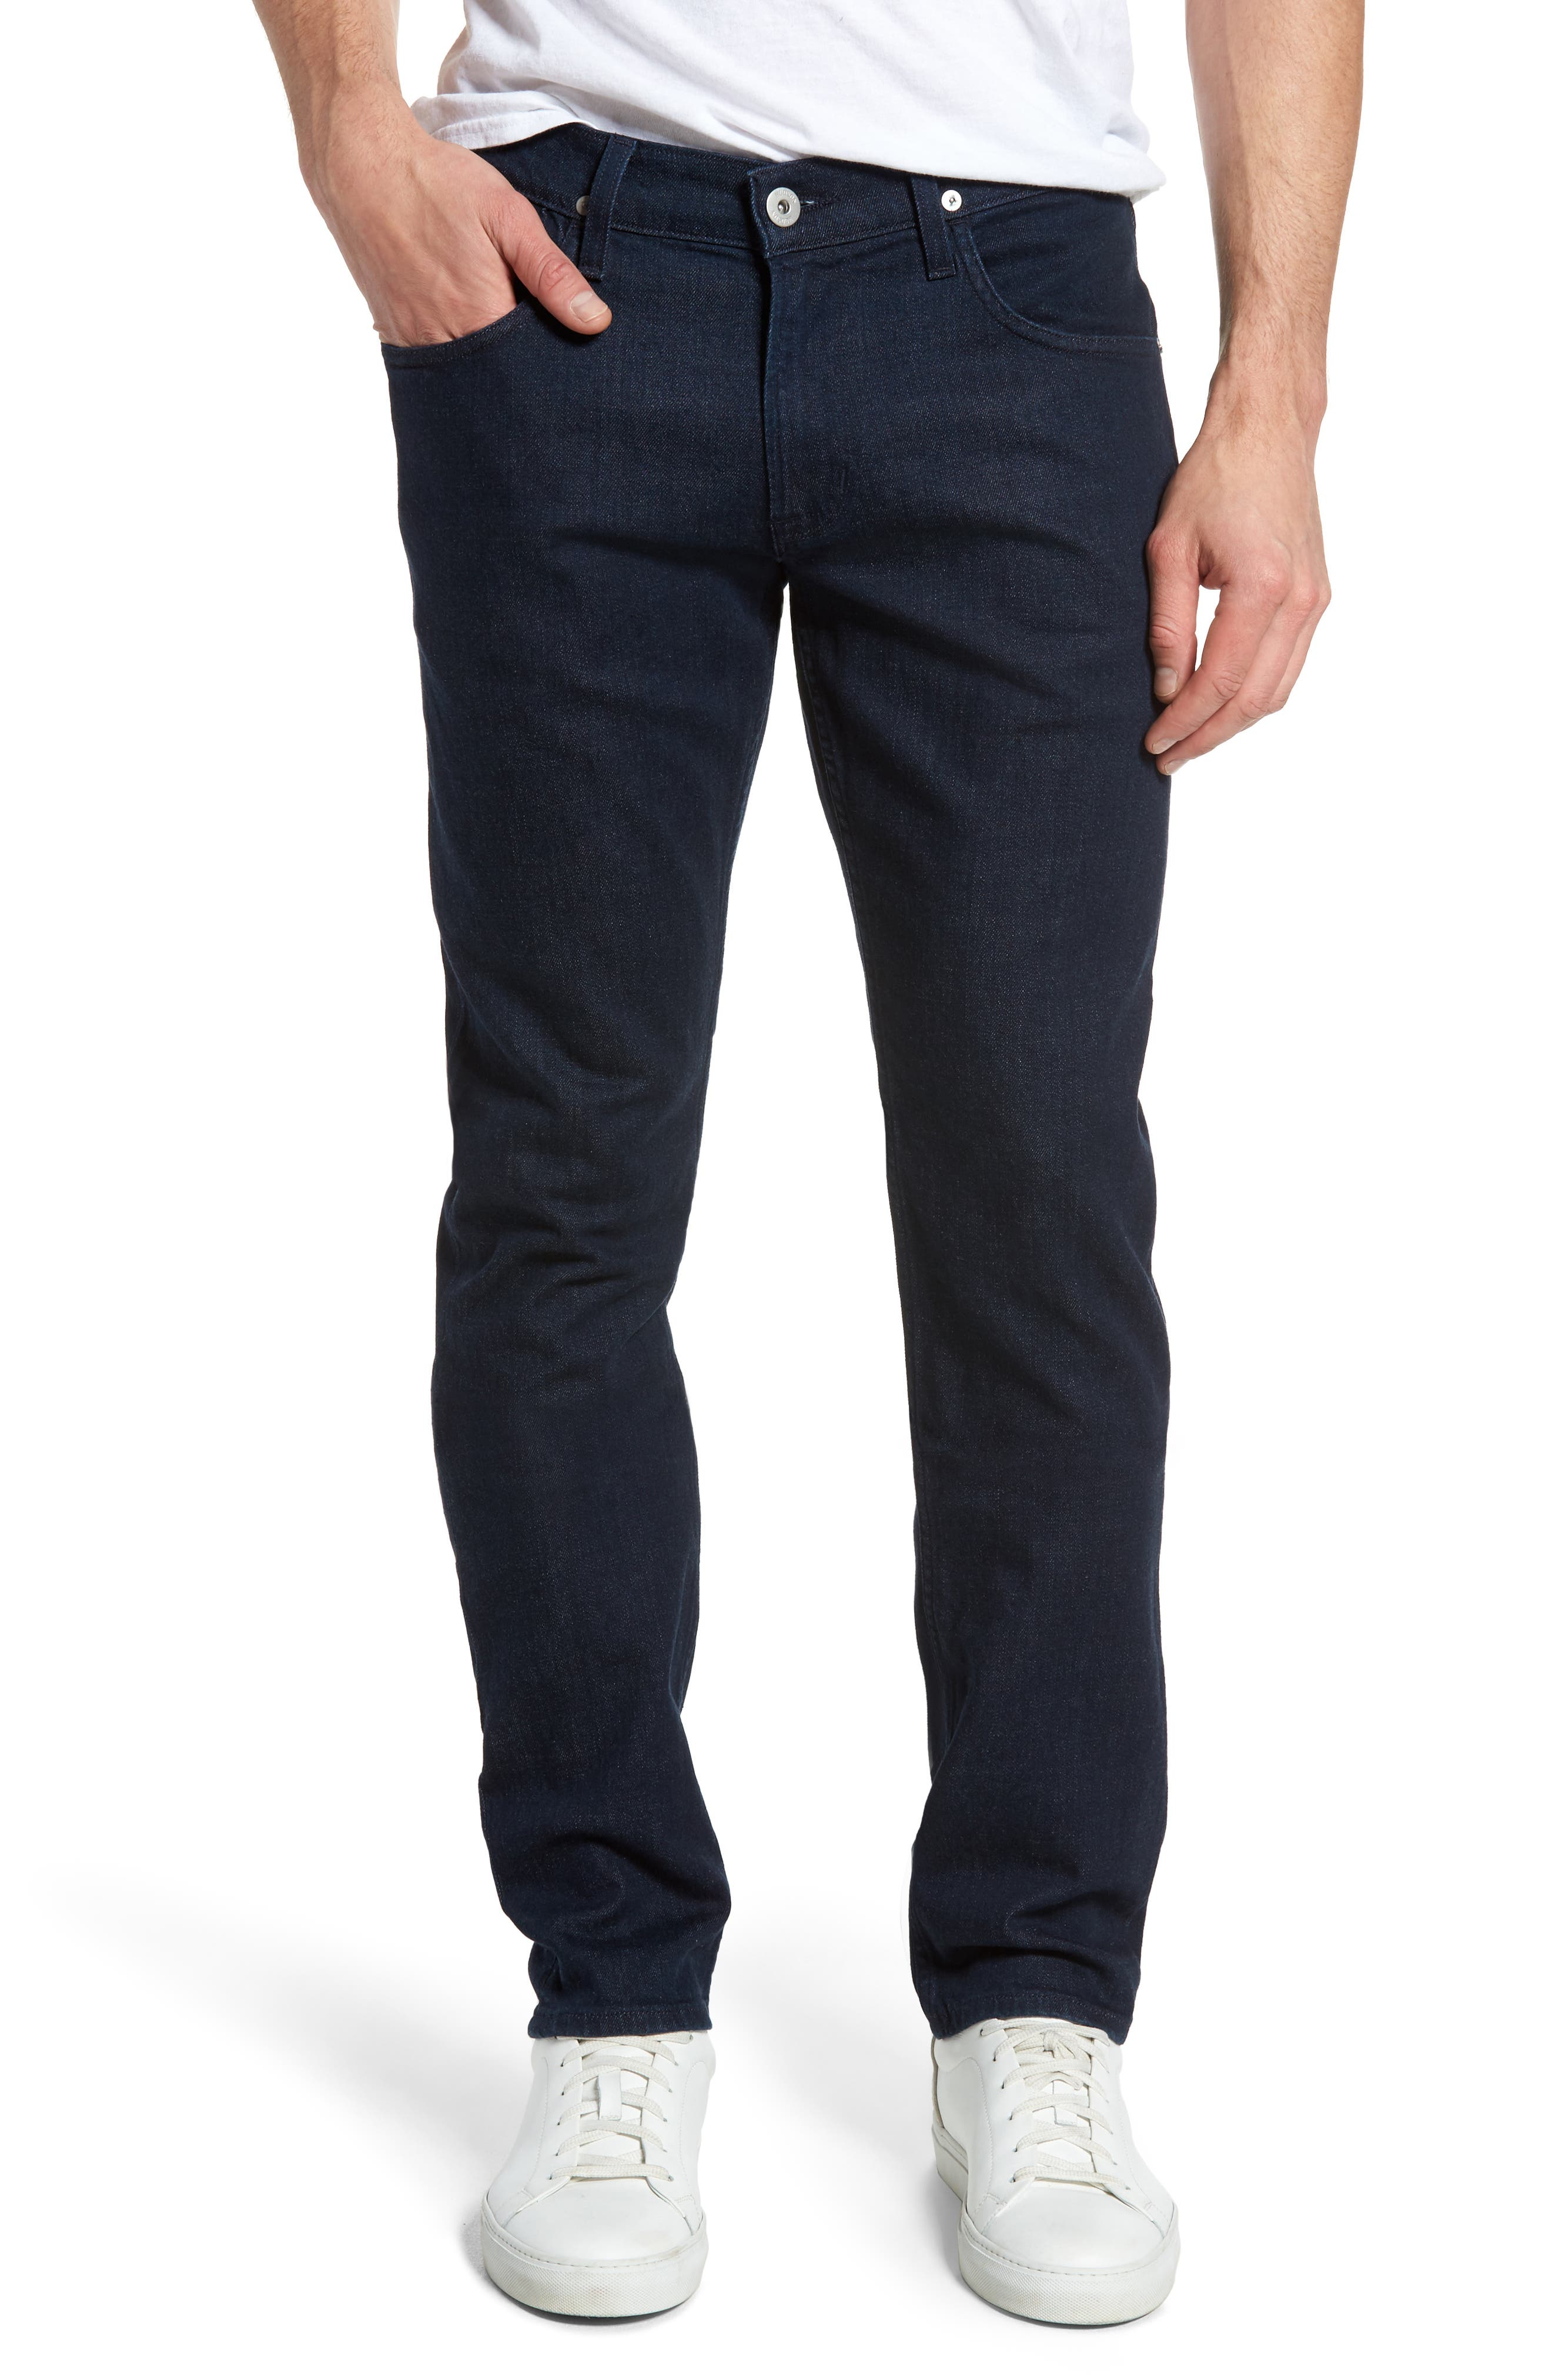 Blake Slim Fit Jeans,                             Main thumbnail 1, color,                             411